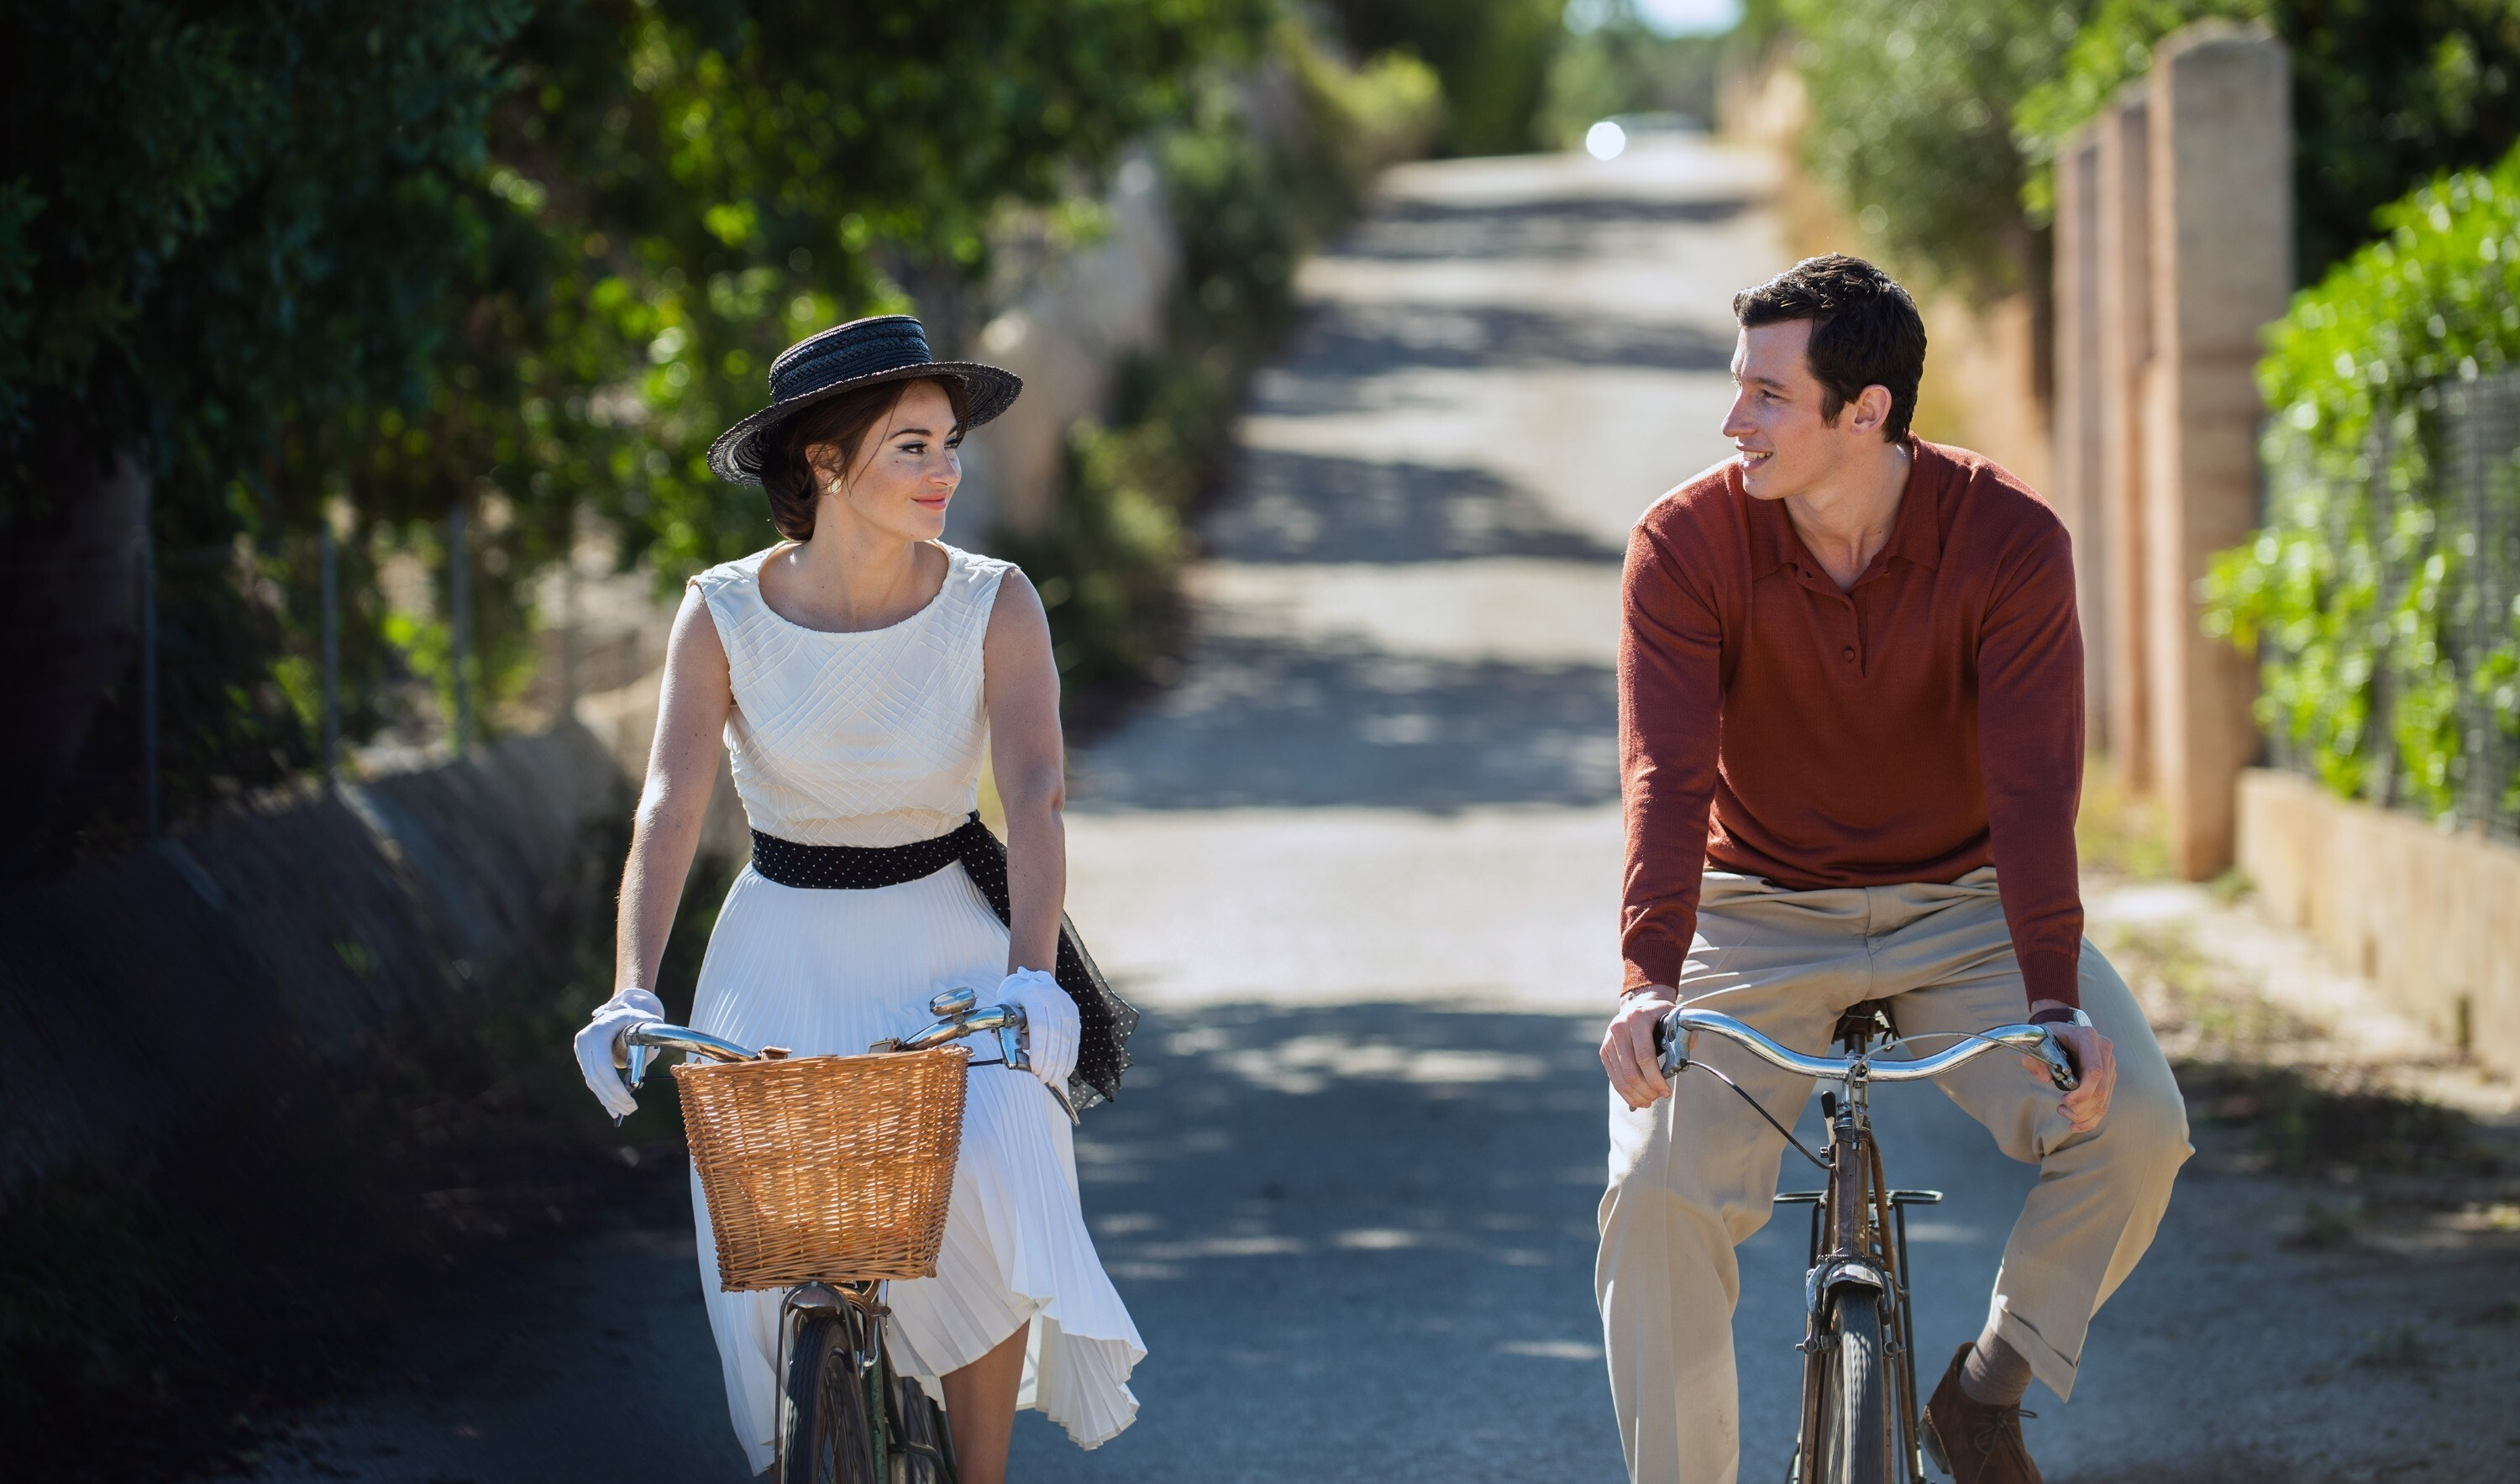 A woman on a bike with a hat and a man on a bike — they are looking at each other